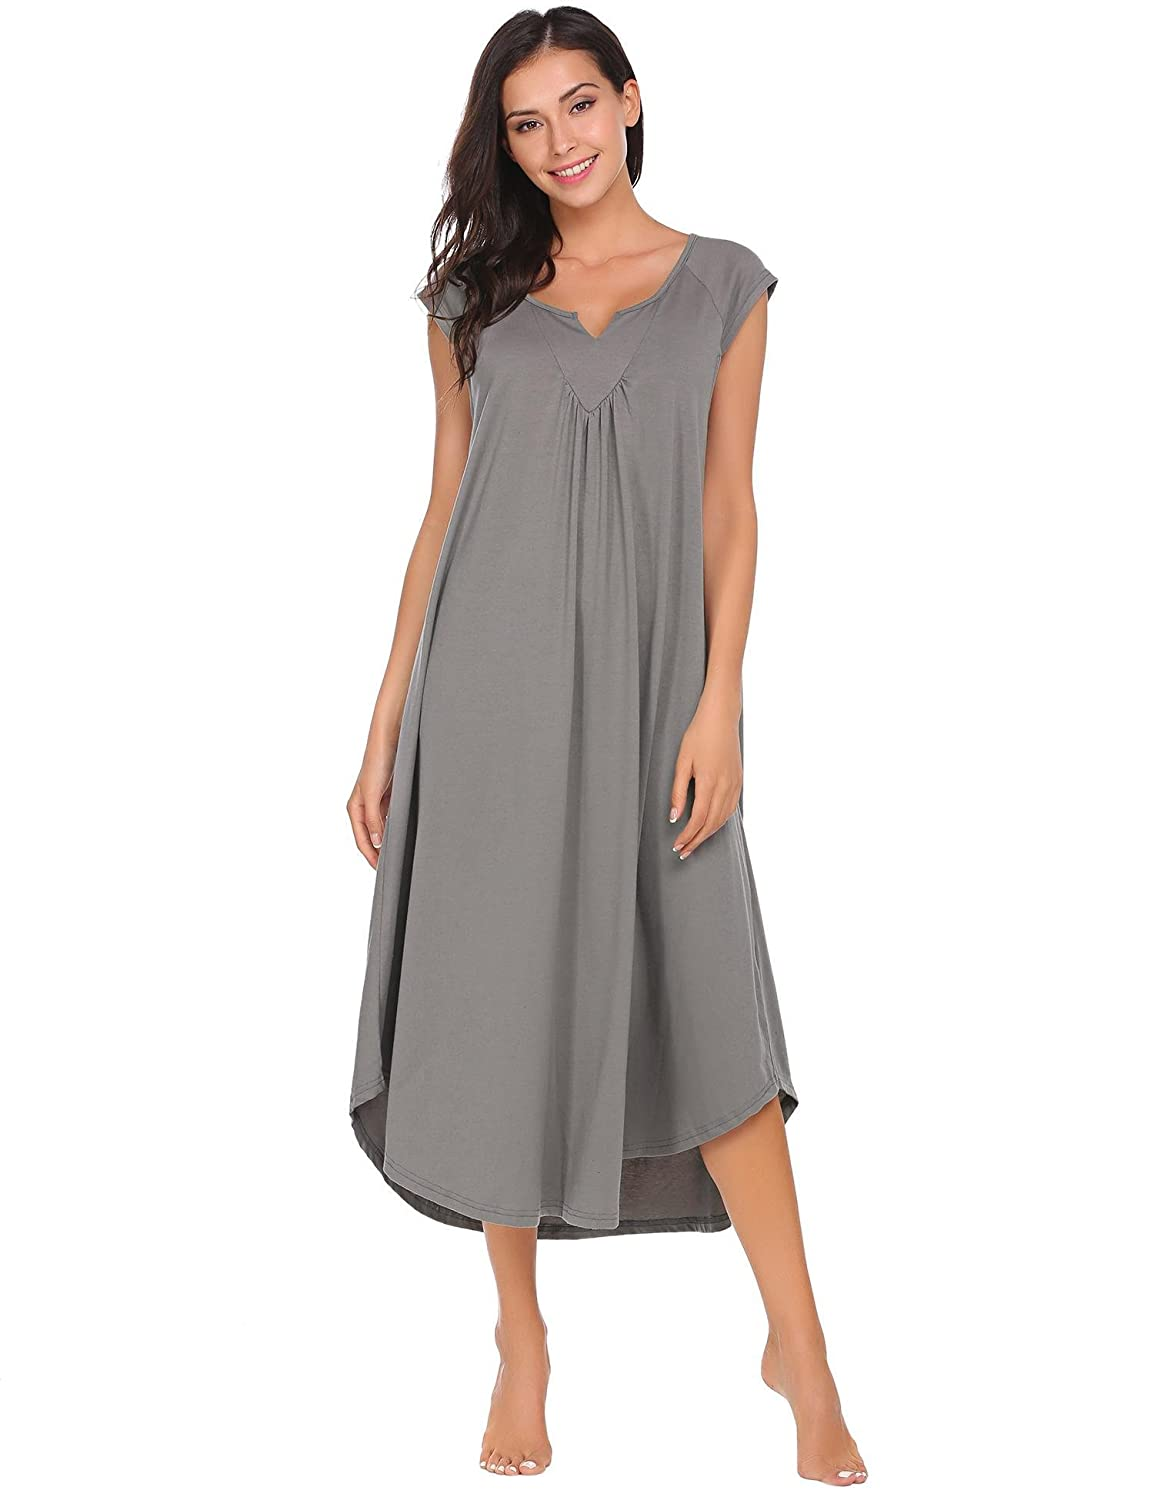 b1beacb822 Top 10 wholesale Sleepwear Gowns - Chinabrands.com